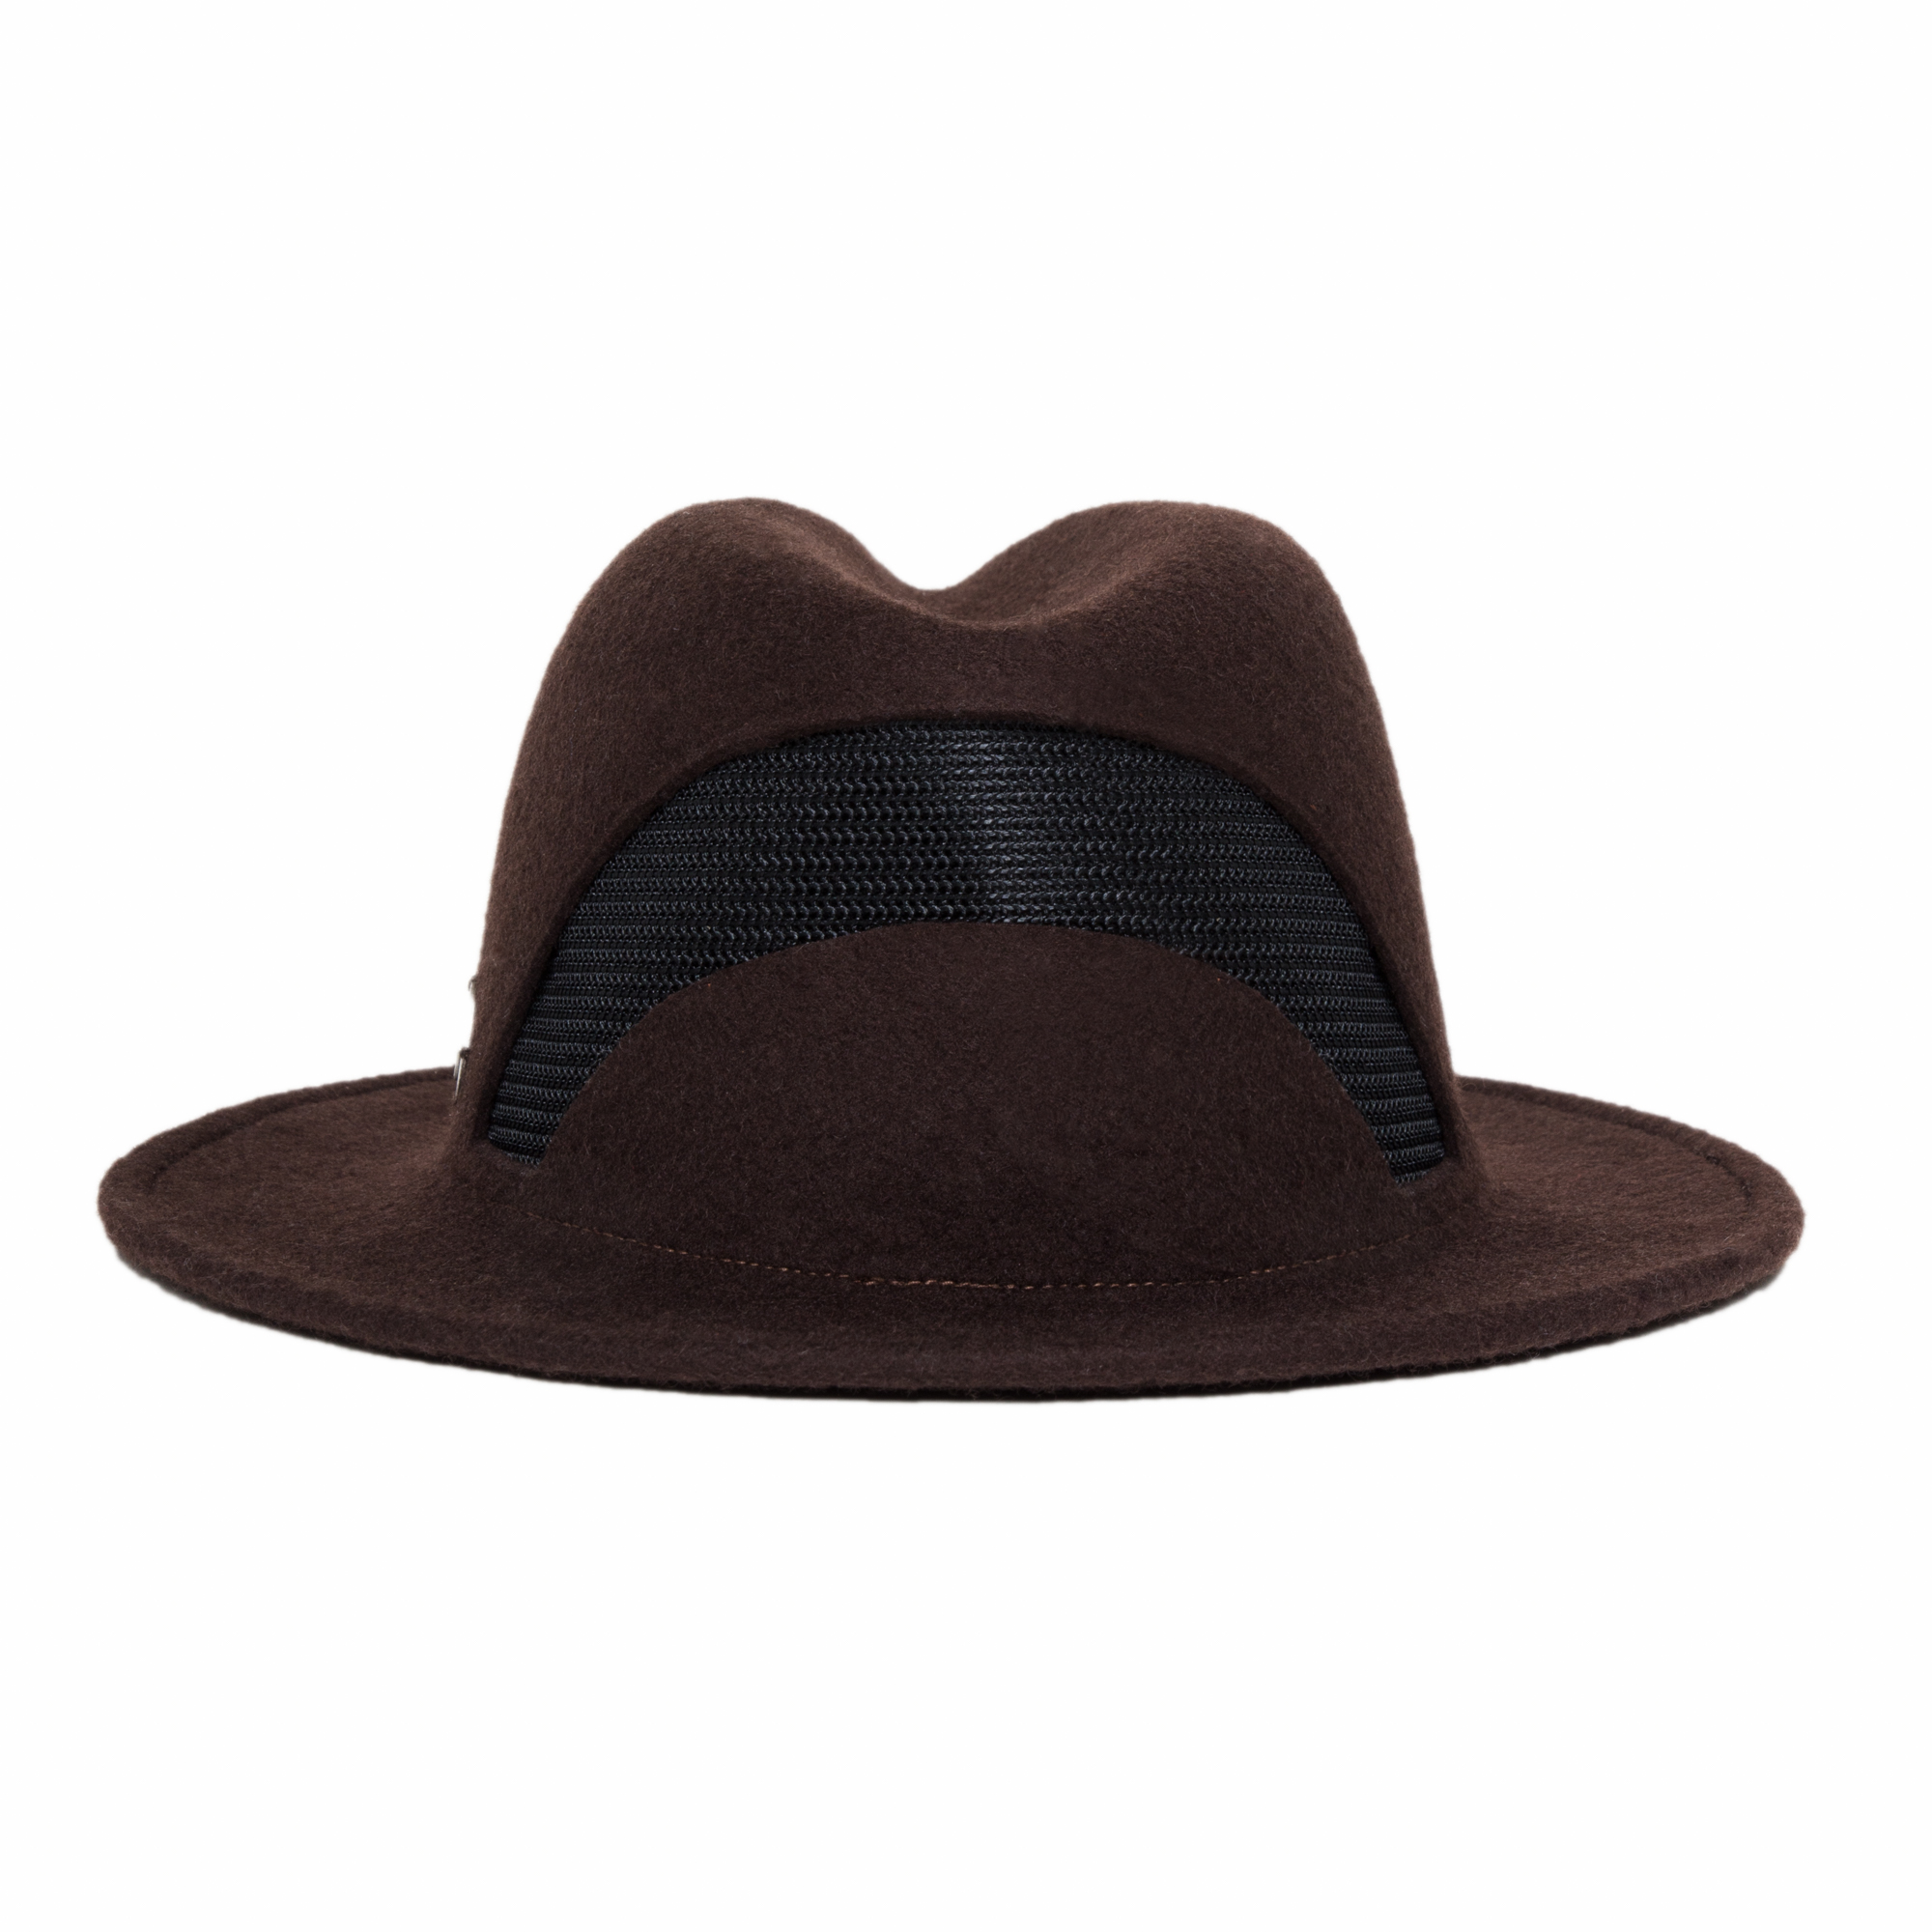 CHAPEAU RAYMOND - This hat is for one who's always on the go, who takes care of business, who places family first, but most importantly one who leads by example.